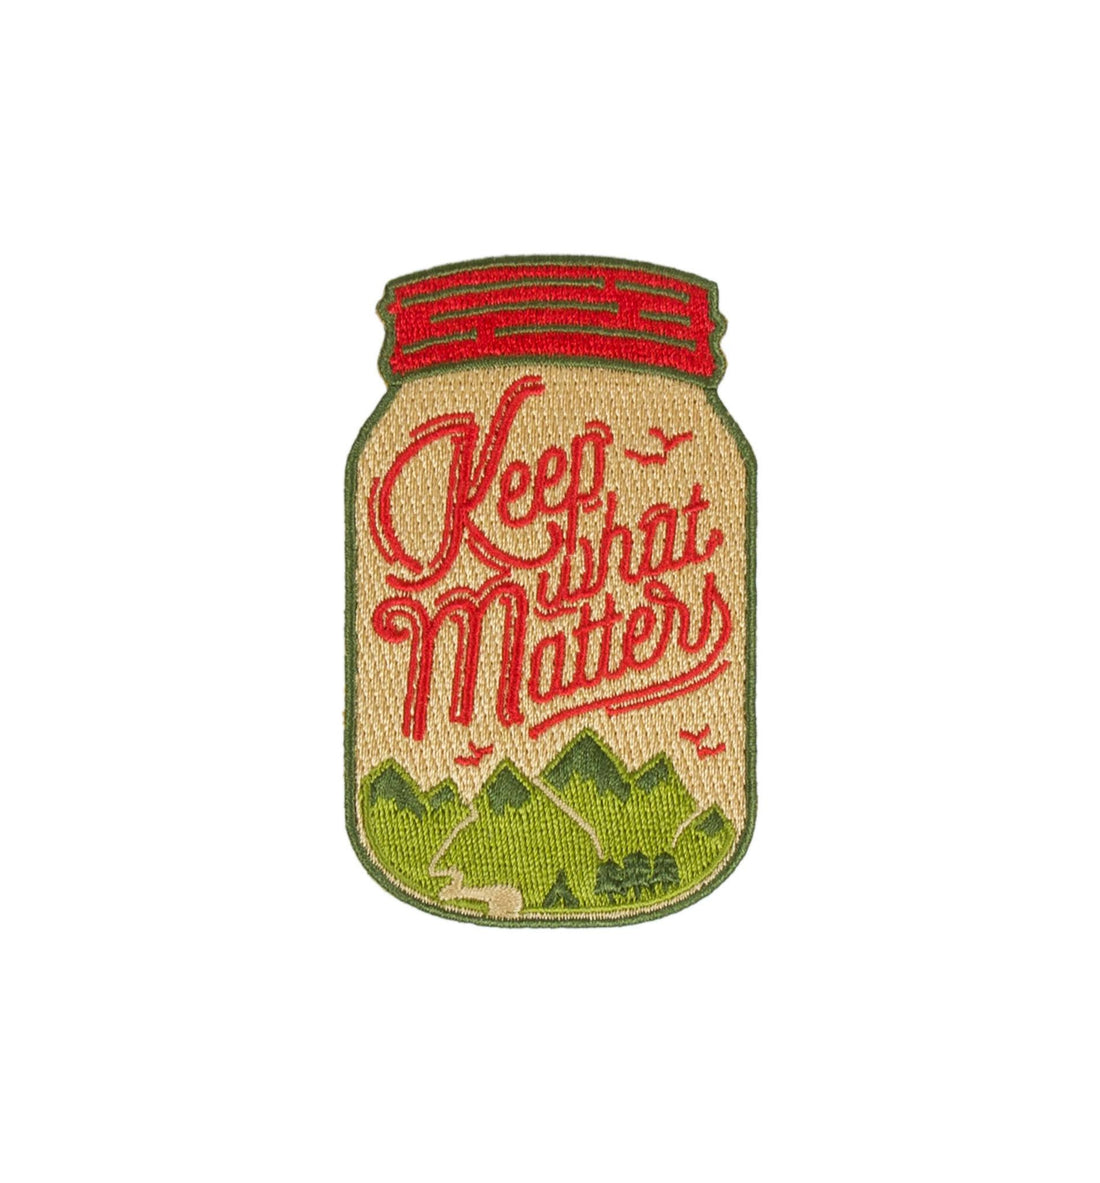 Asilda - Keep What Mattters Patch - Accessories: Patches - Iron and Resin